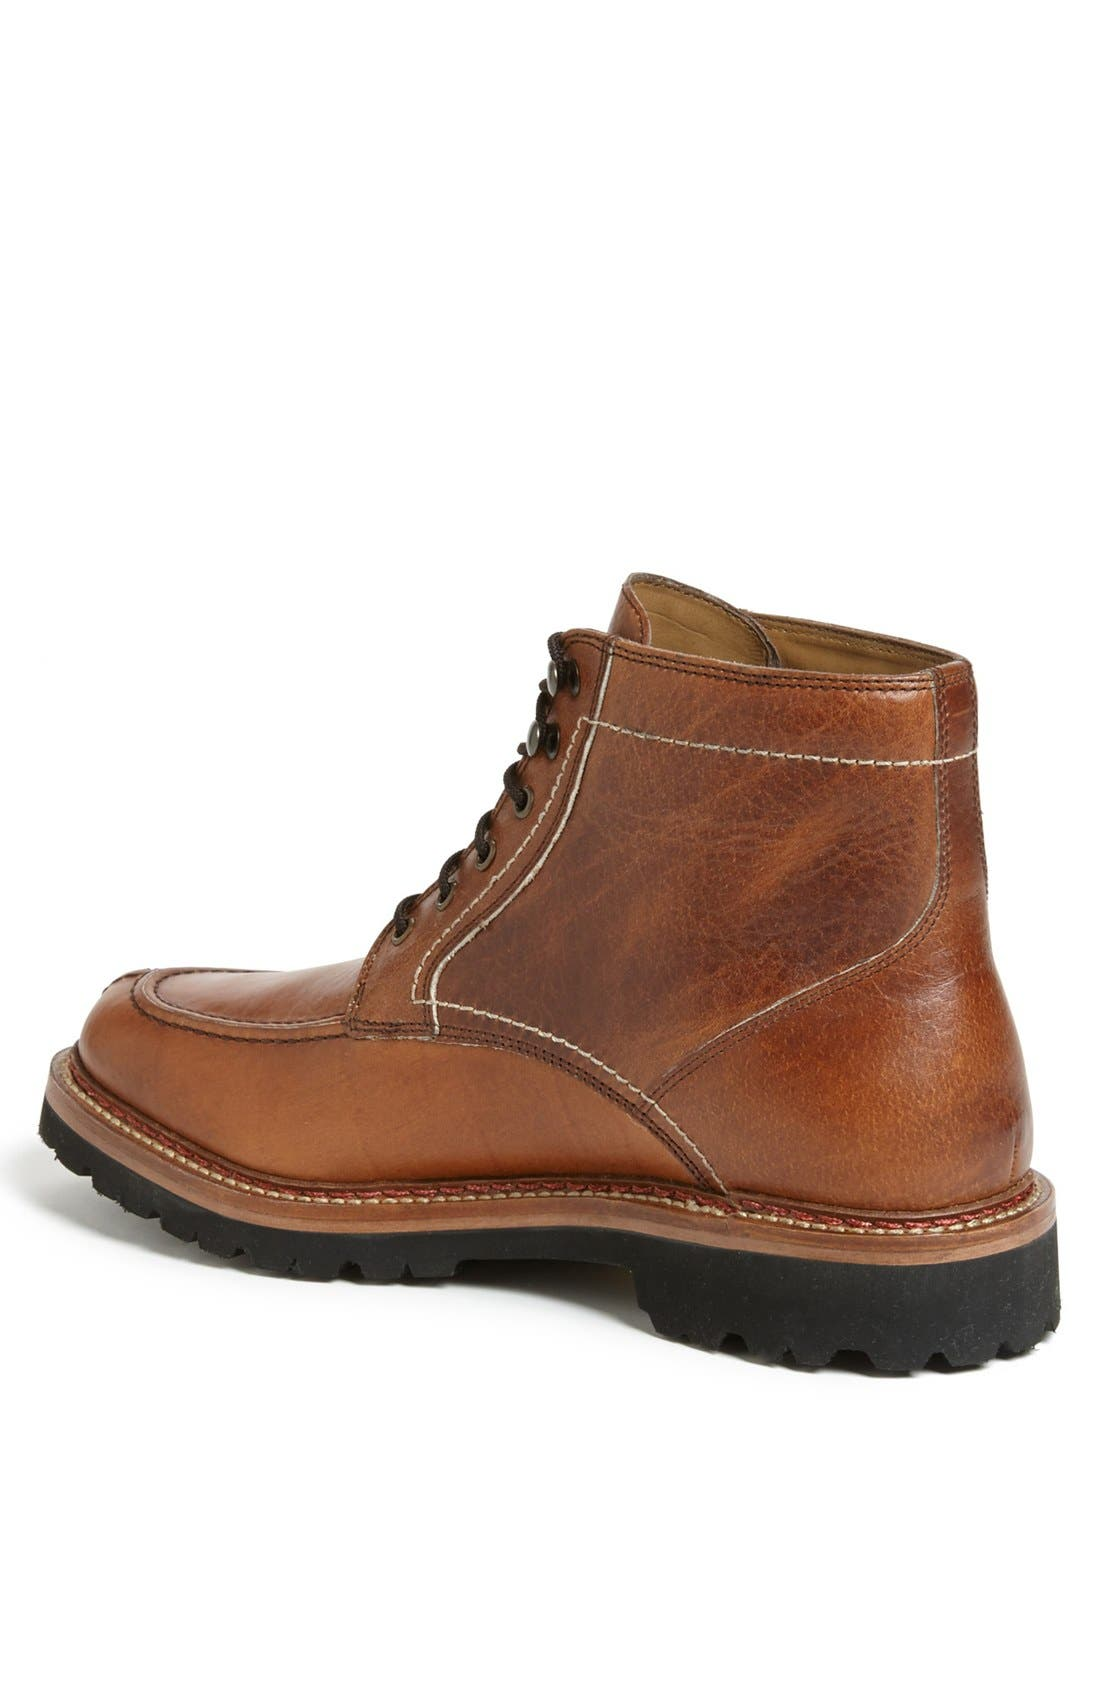 'Elkhorn' Split Toe Boot,                             Alternate thumbnail 3, color,                             235